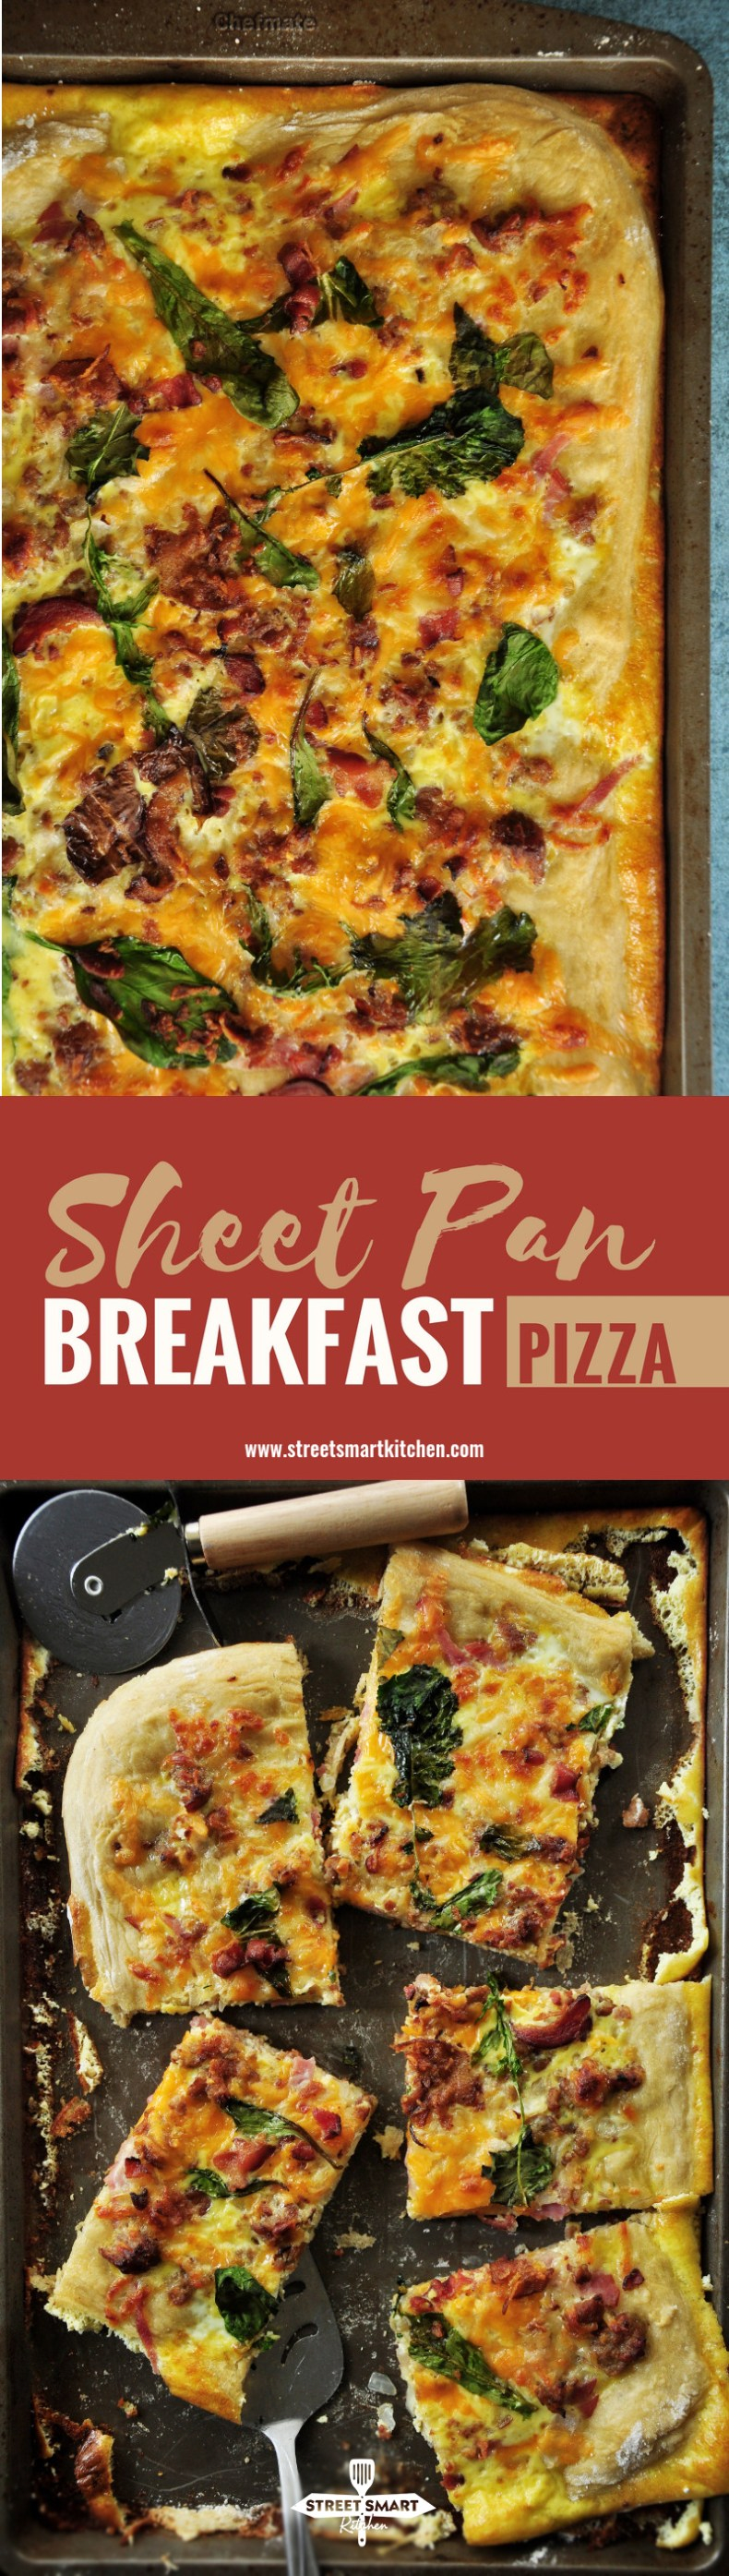 Sheet Pan Breakfast Pizza Recipe